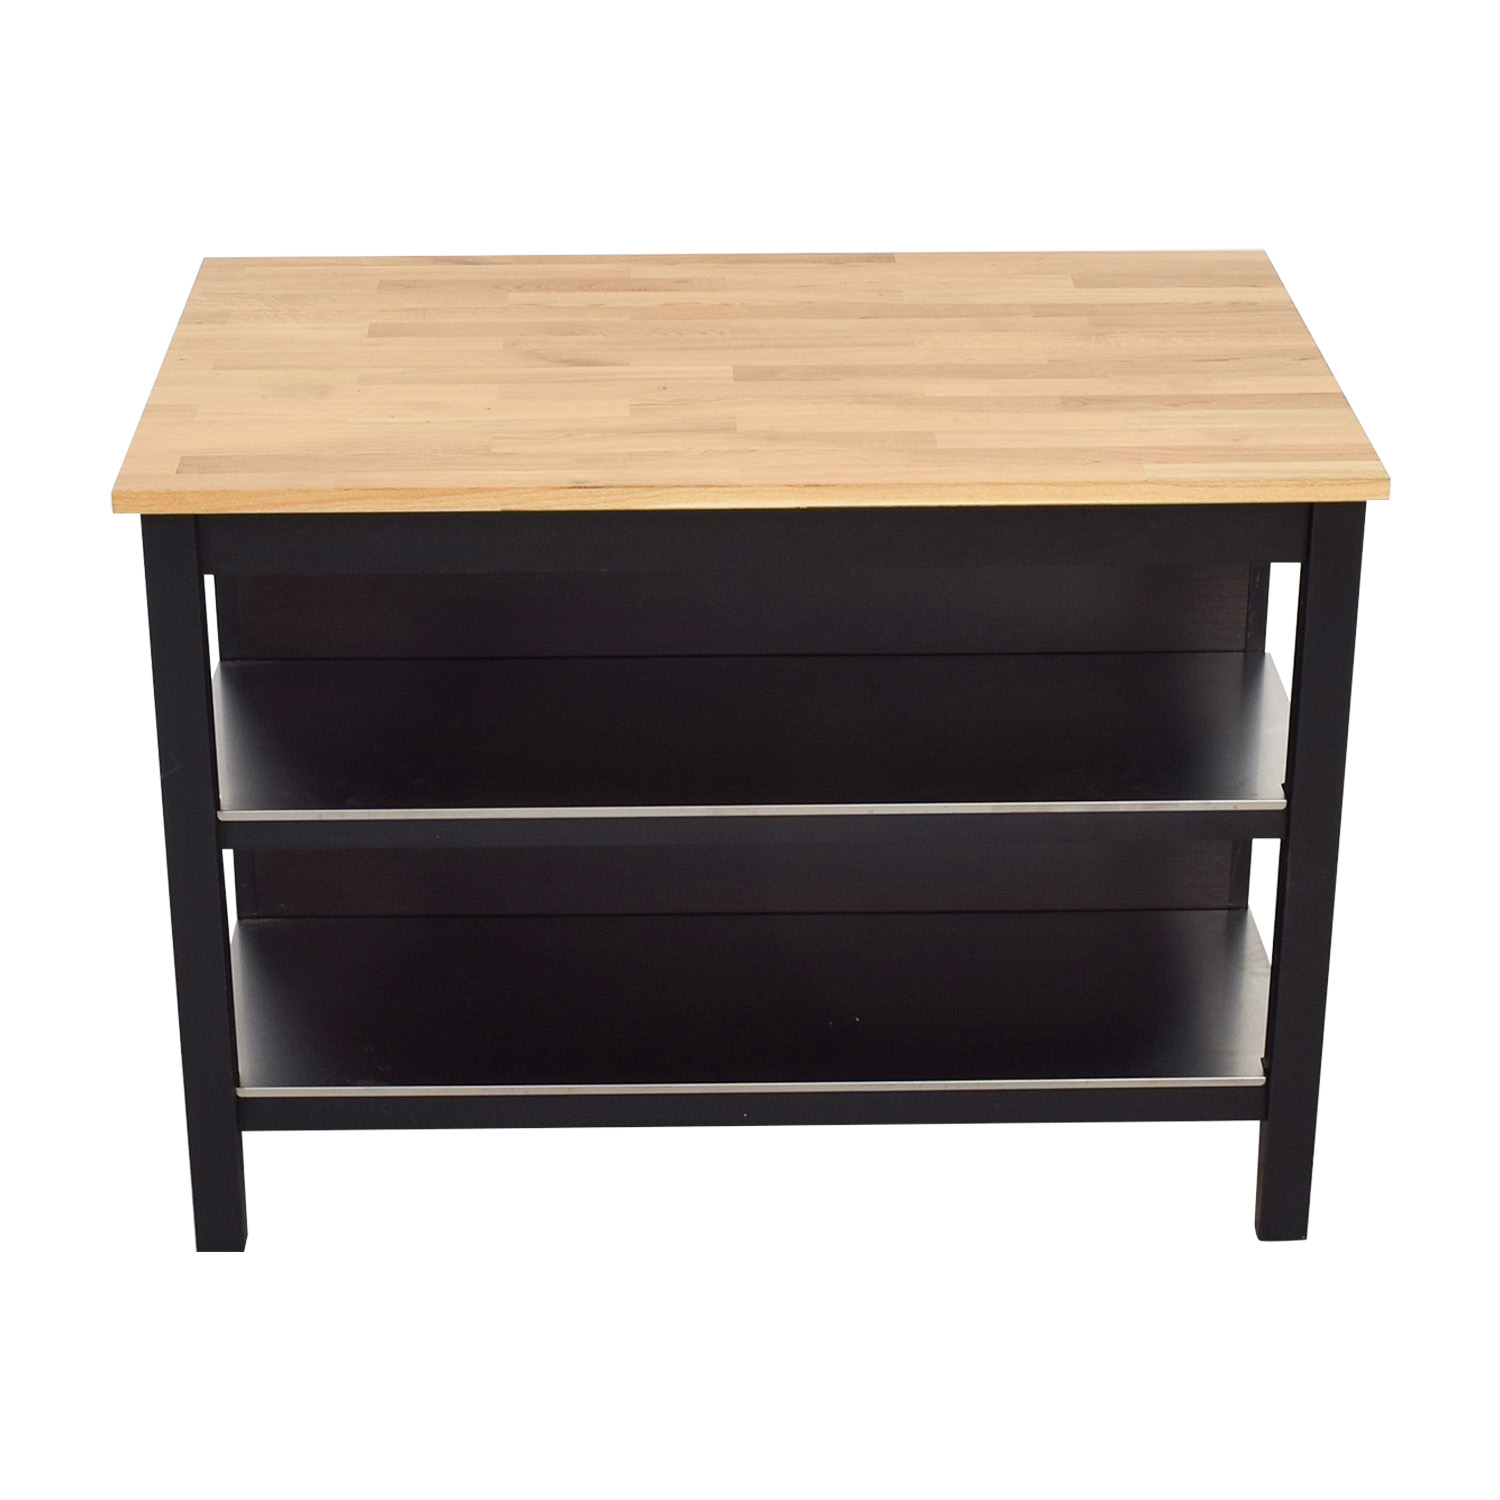 IKEA IKEA Stentorp Kitchen Island discount